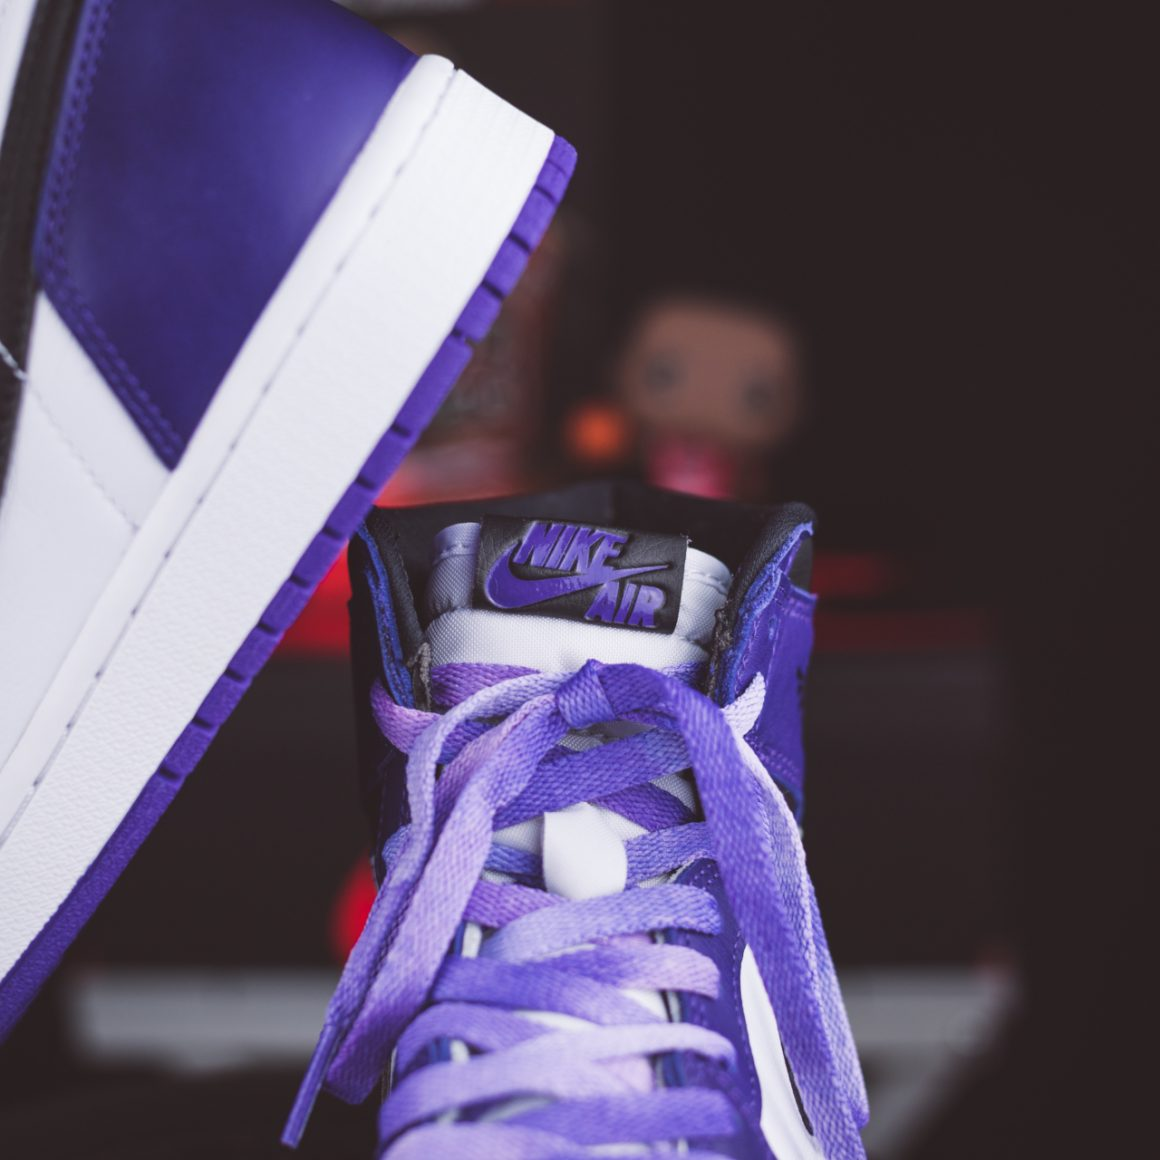  Air Jordan 1 Retro High OG ''Court Purple''